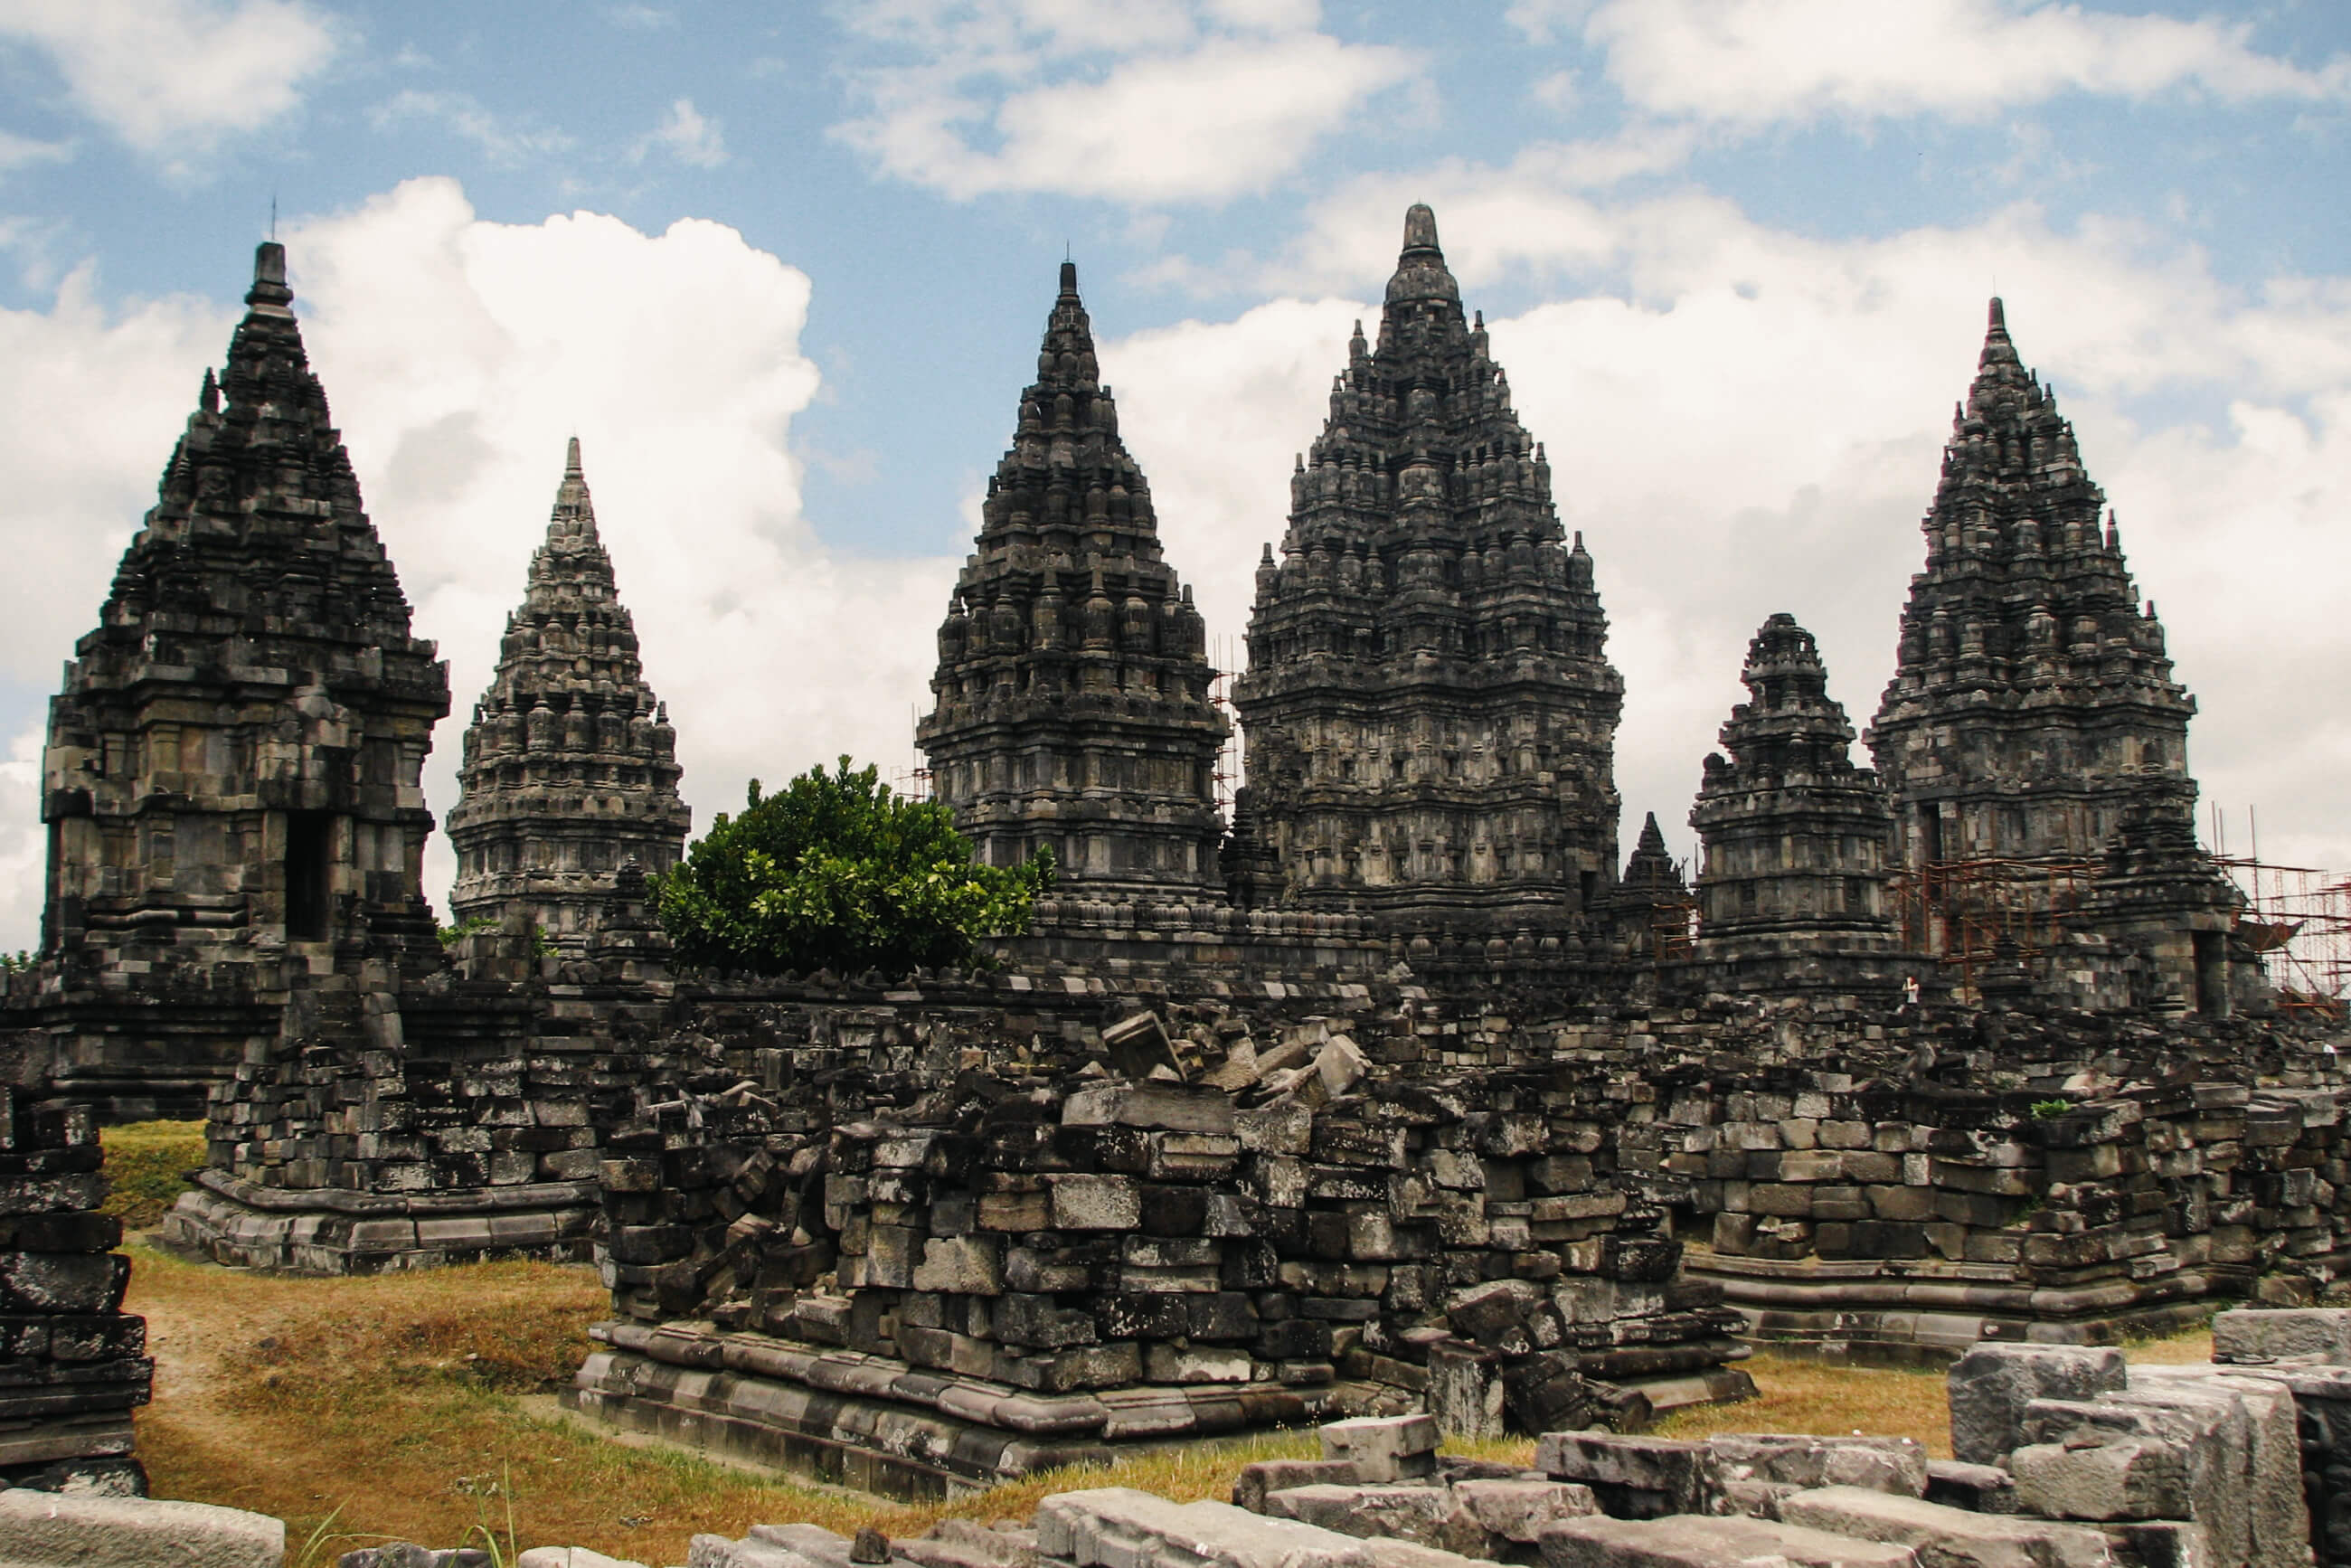 https://bubo.sk/uploads/galleries/7329/jozefharvanek_indonezia_java_266-hinduisticky-komplex-chramov-prambanan-14.jpg